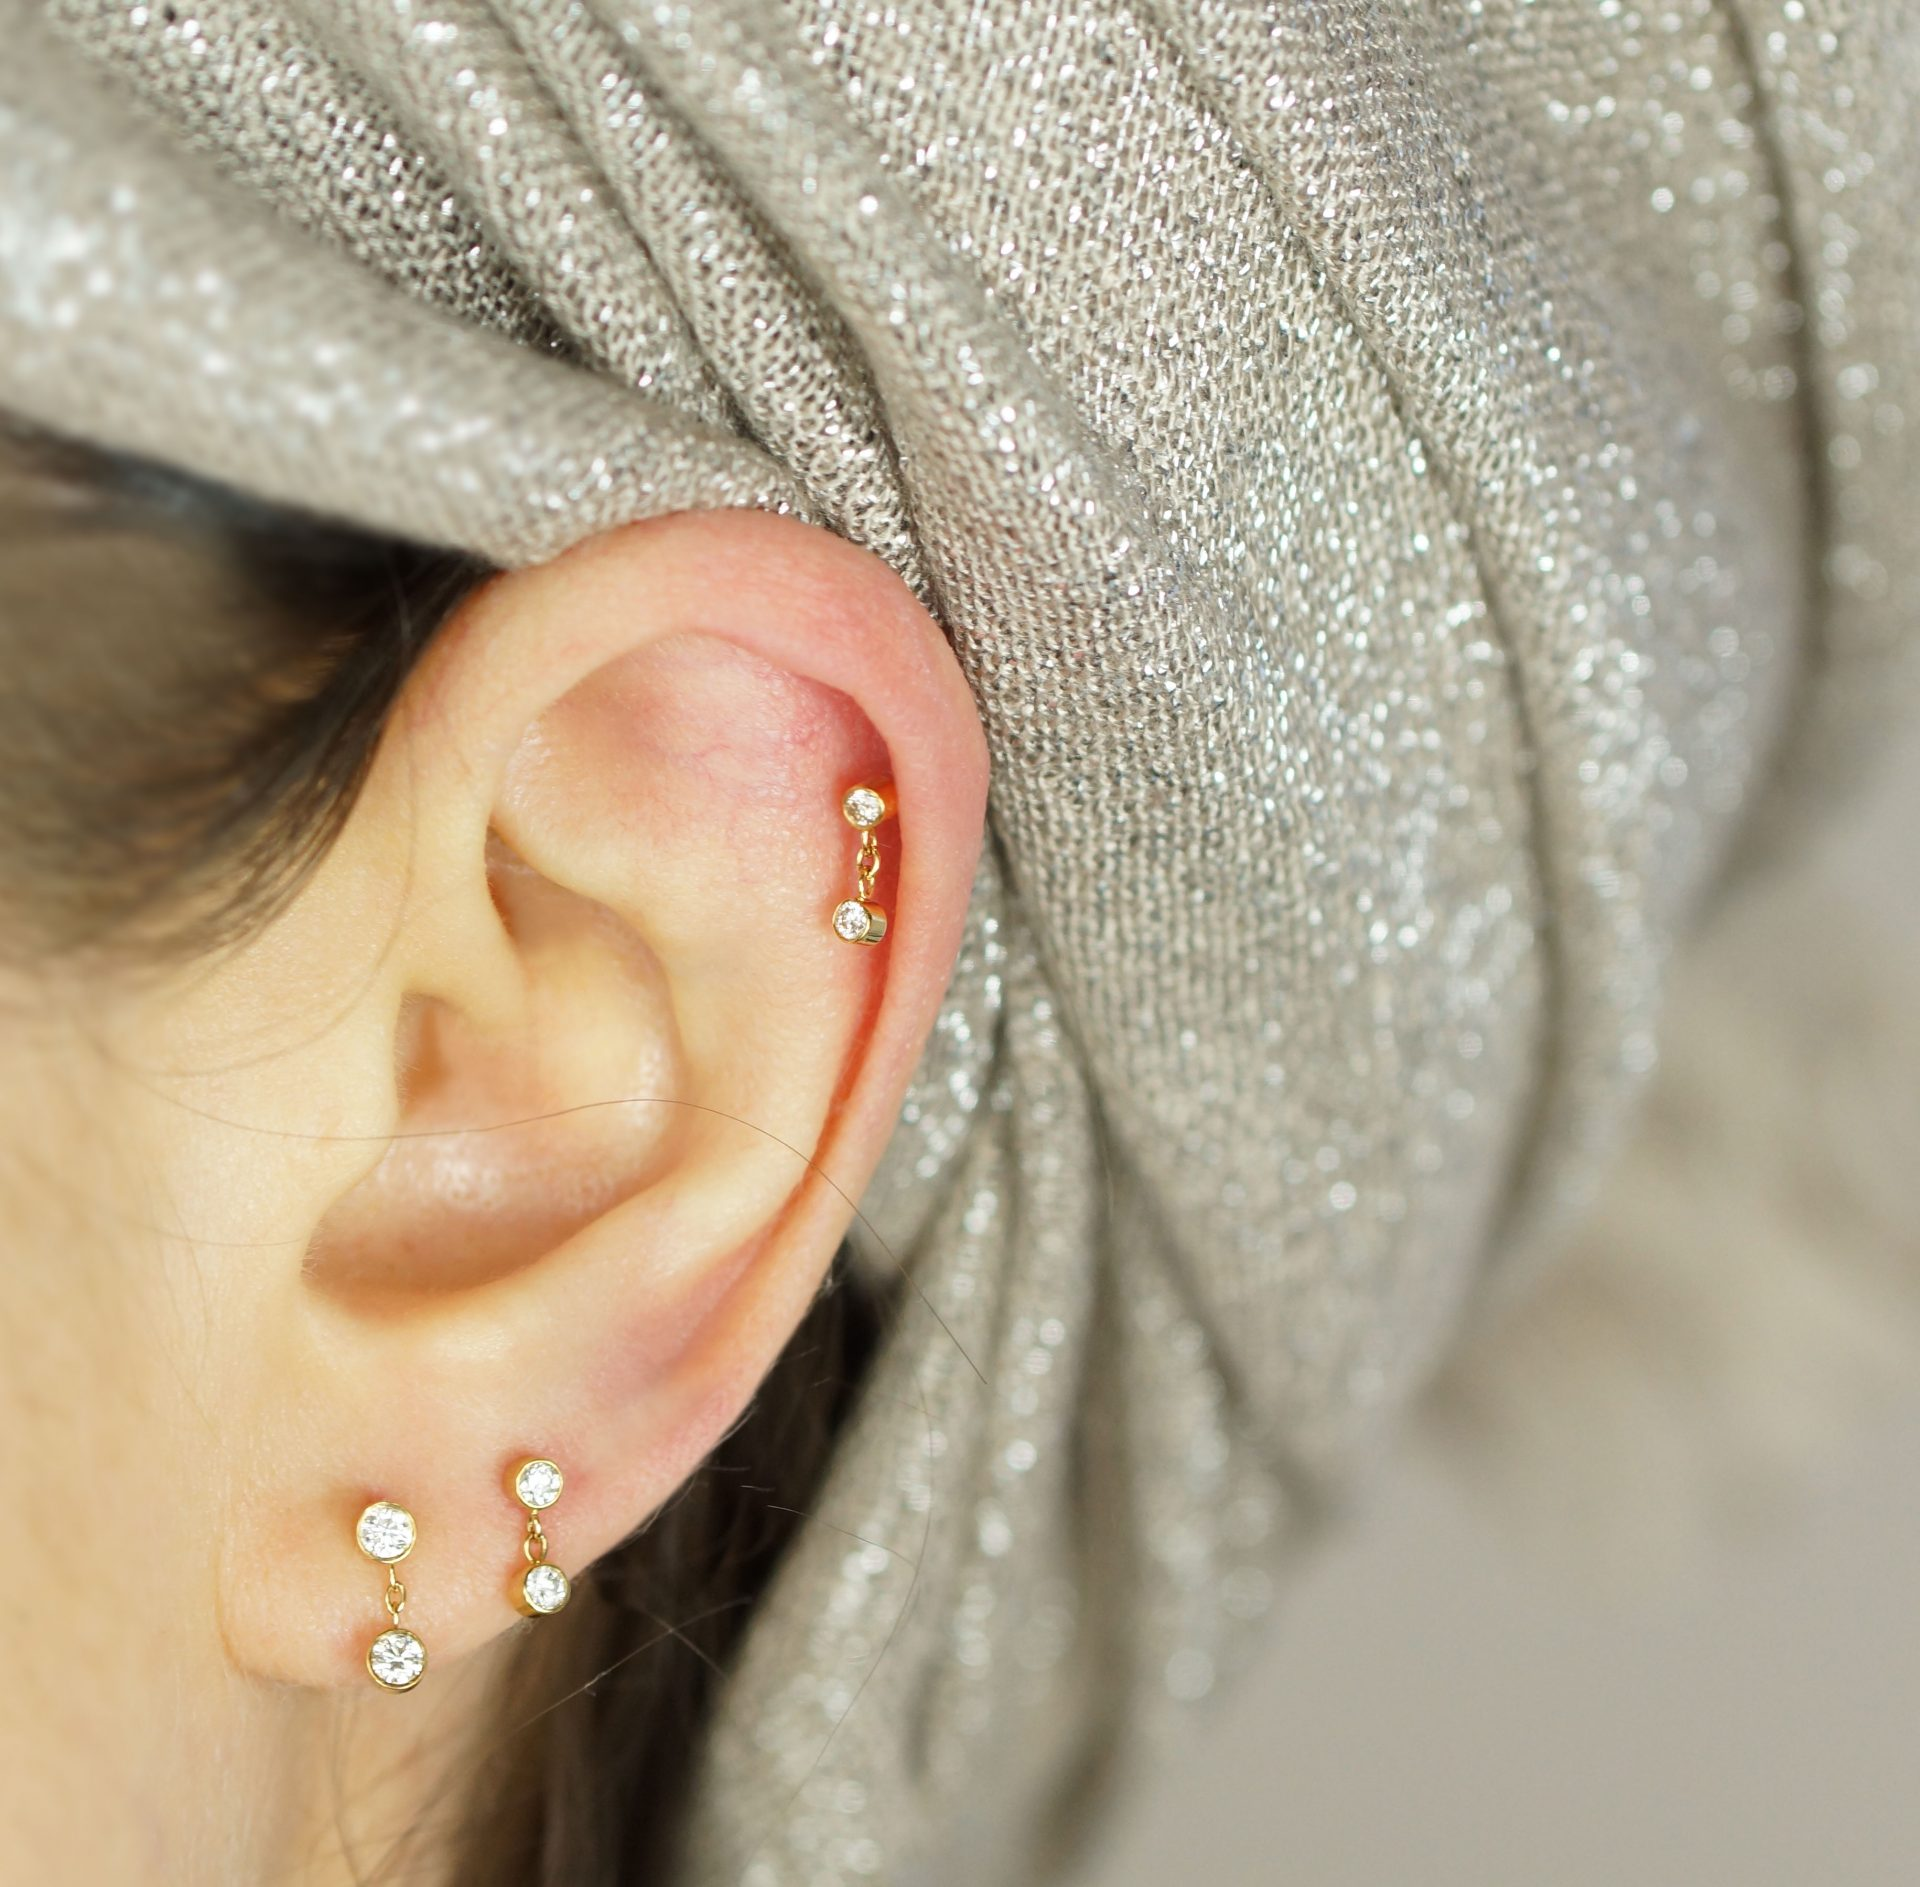 """Create your own """"curated ear"""" with this versatile diamond stud earring. The 18k gold is set with sparkling natural white diamonds. Wear it on the lobe or cartilage to create a personalised ear-style."""